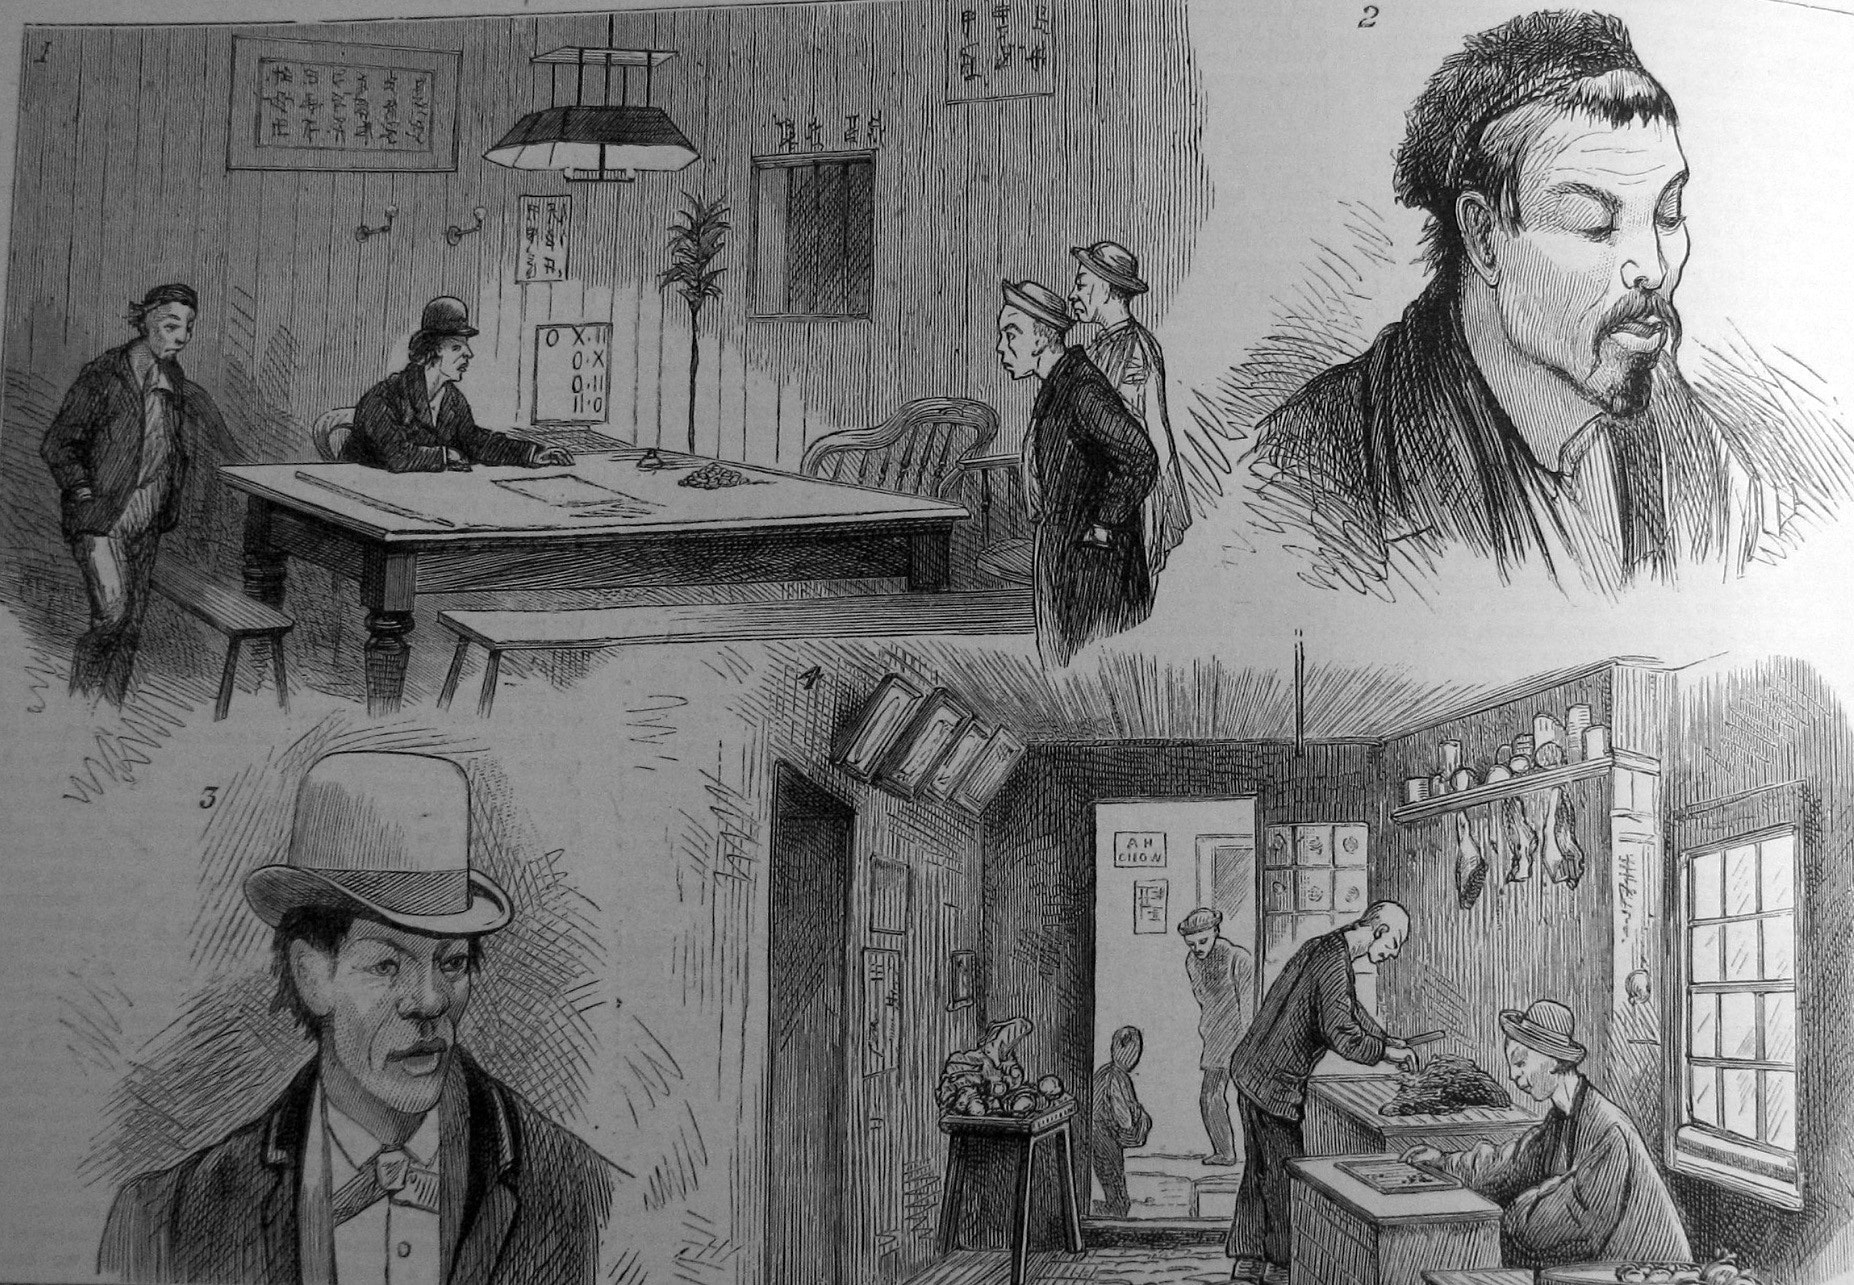 the story of Fook Shing, colonial Victoria's Chinese detective